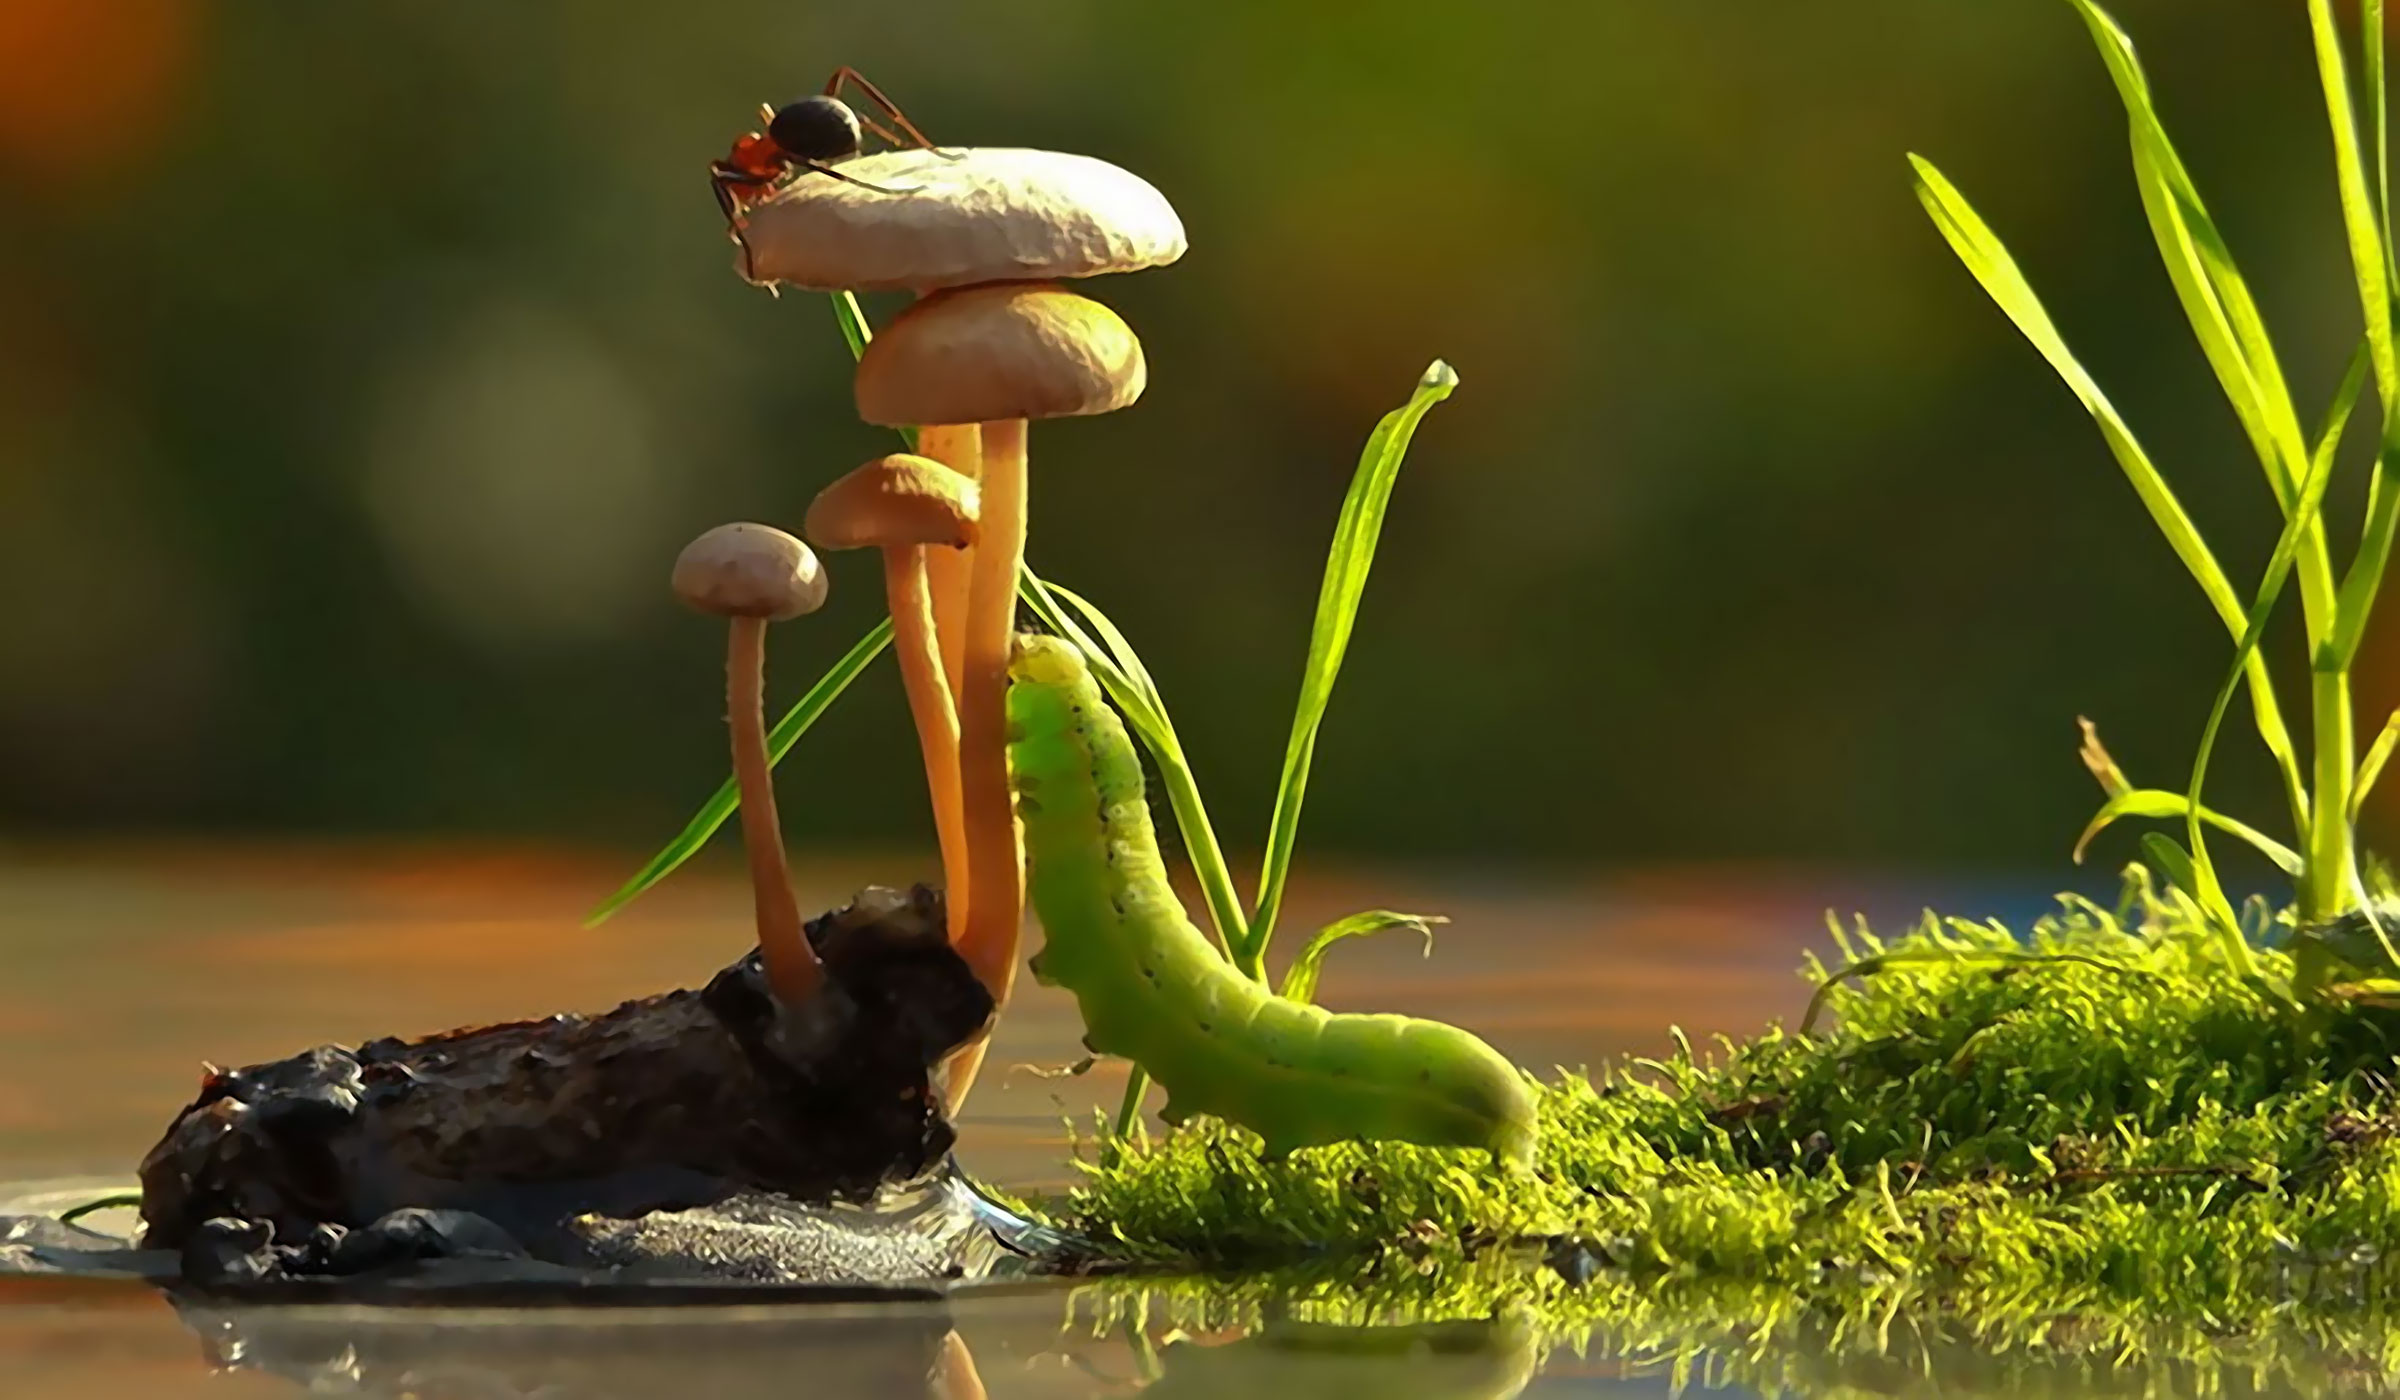 An Incredible World of Mushrooms